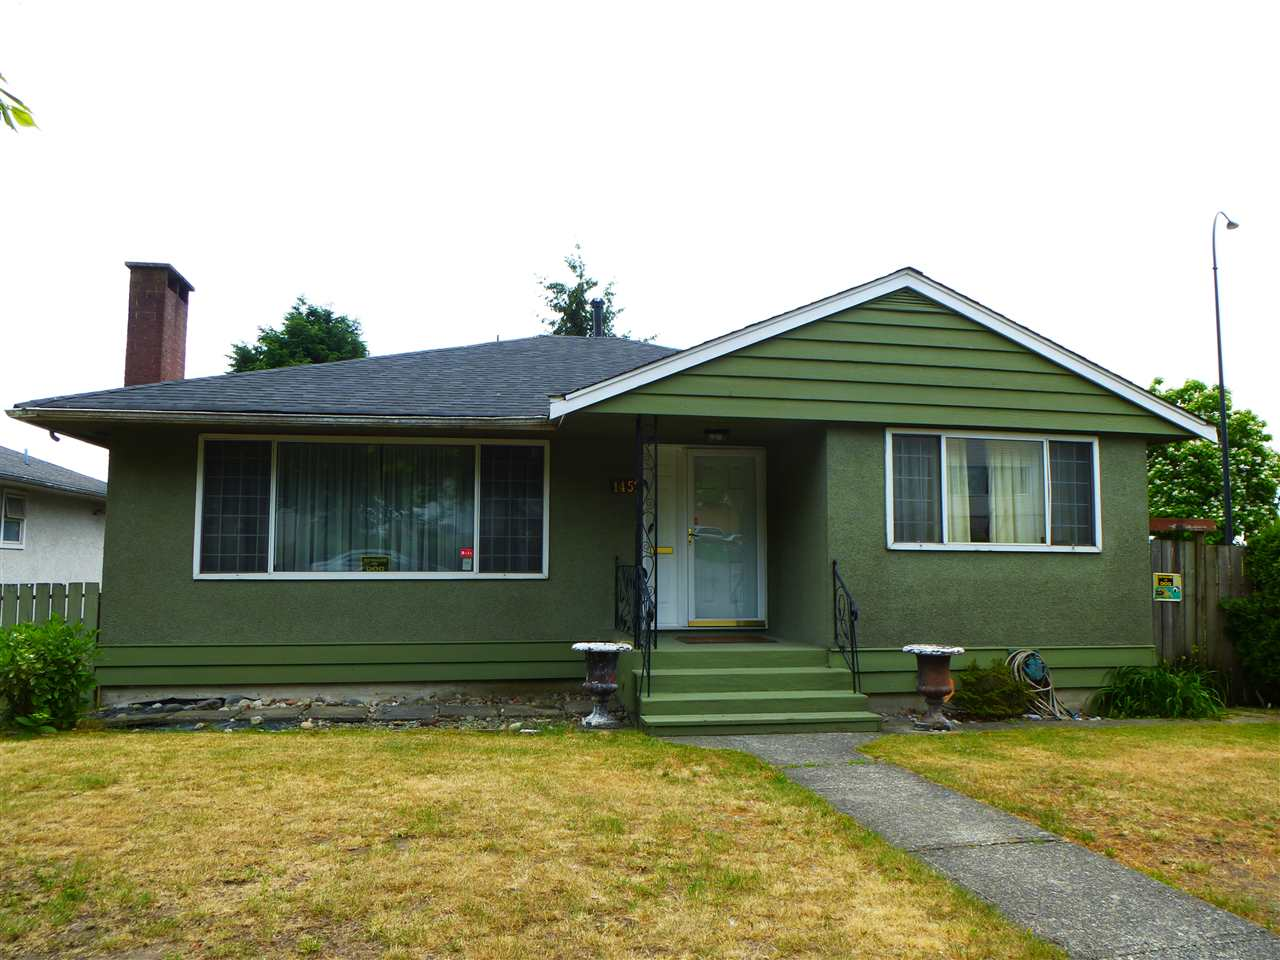 Removed: 1452 East 64th Avenue, Vancouver, BC - Removed on 2018-08-31 15:09:26